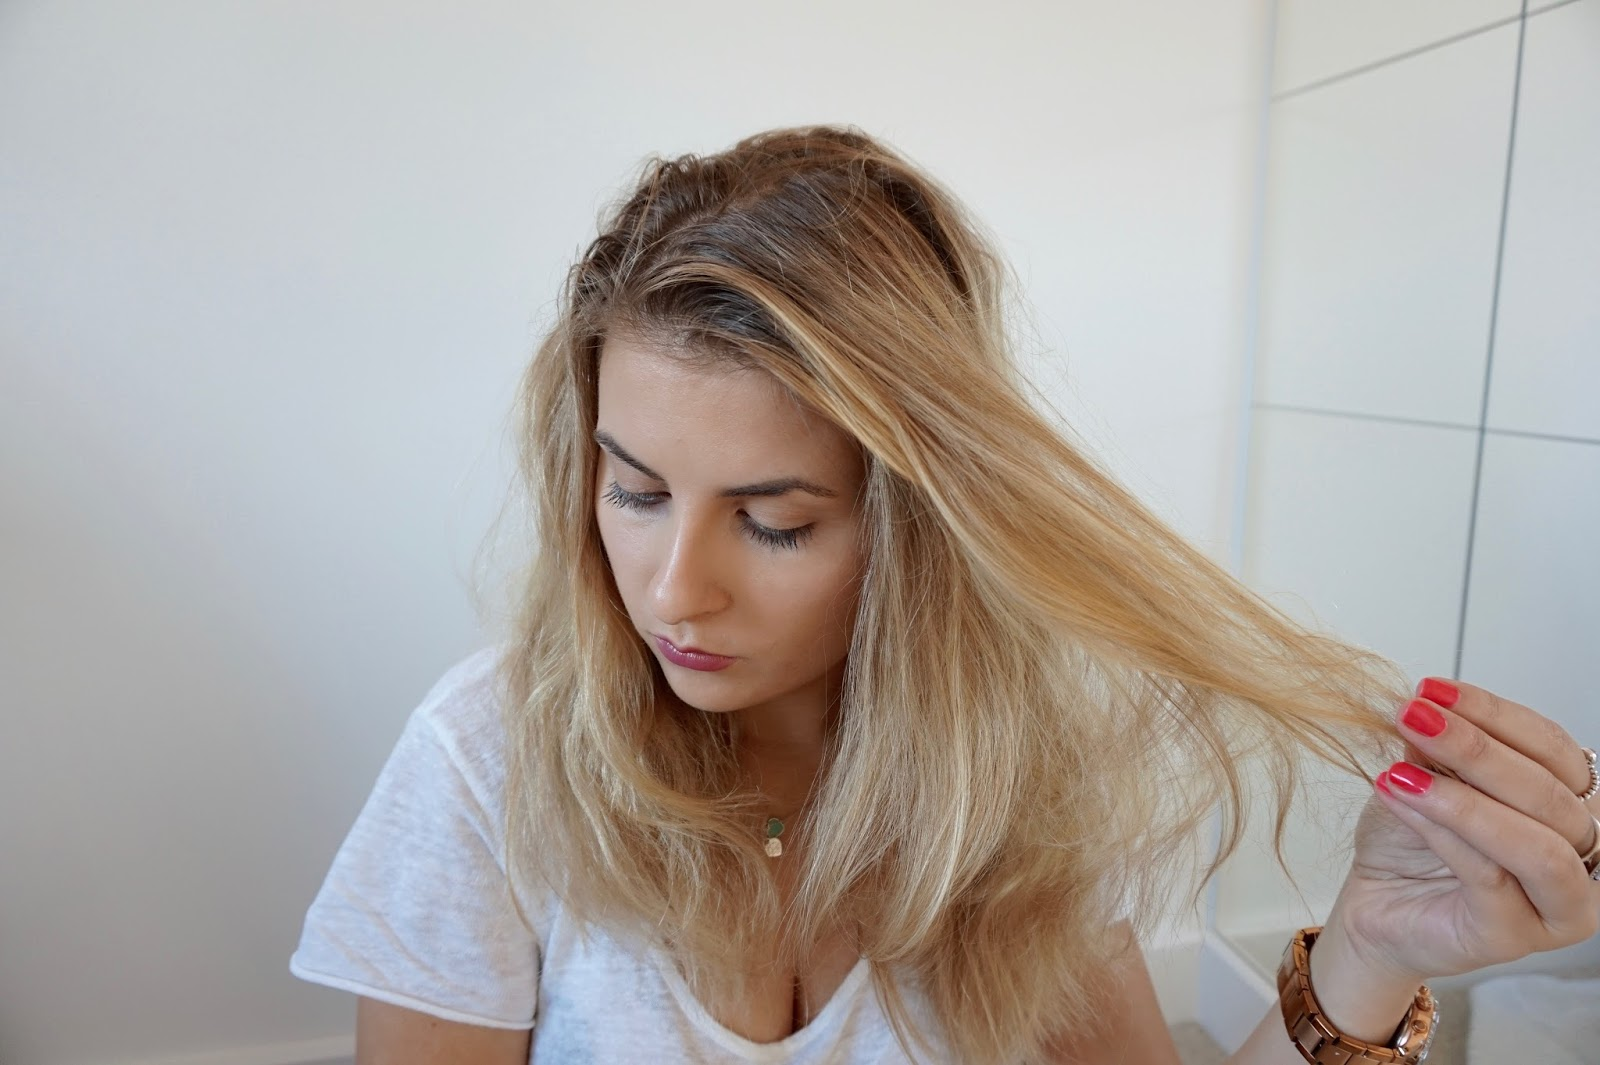 How To Fix A Home Hair Dye Disaster 4 Things I Learnt From Dying